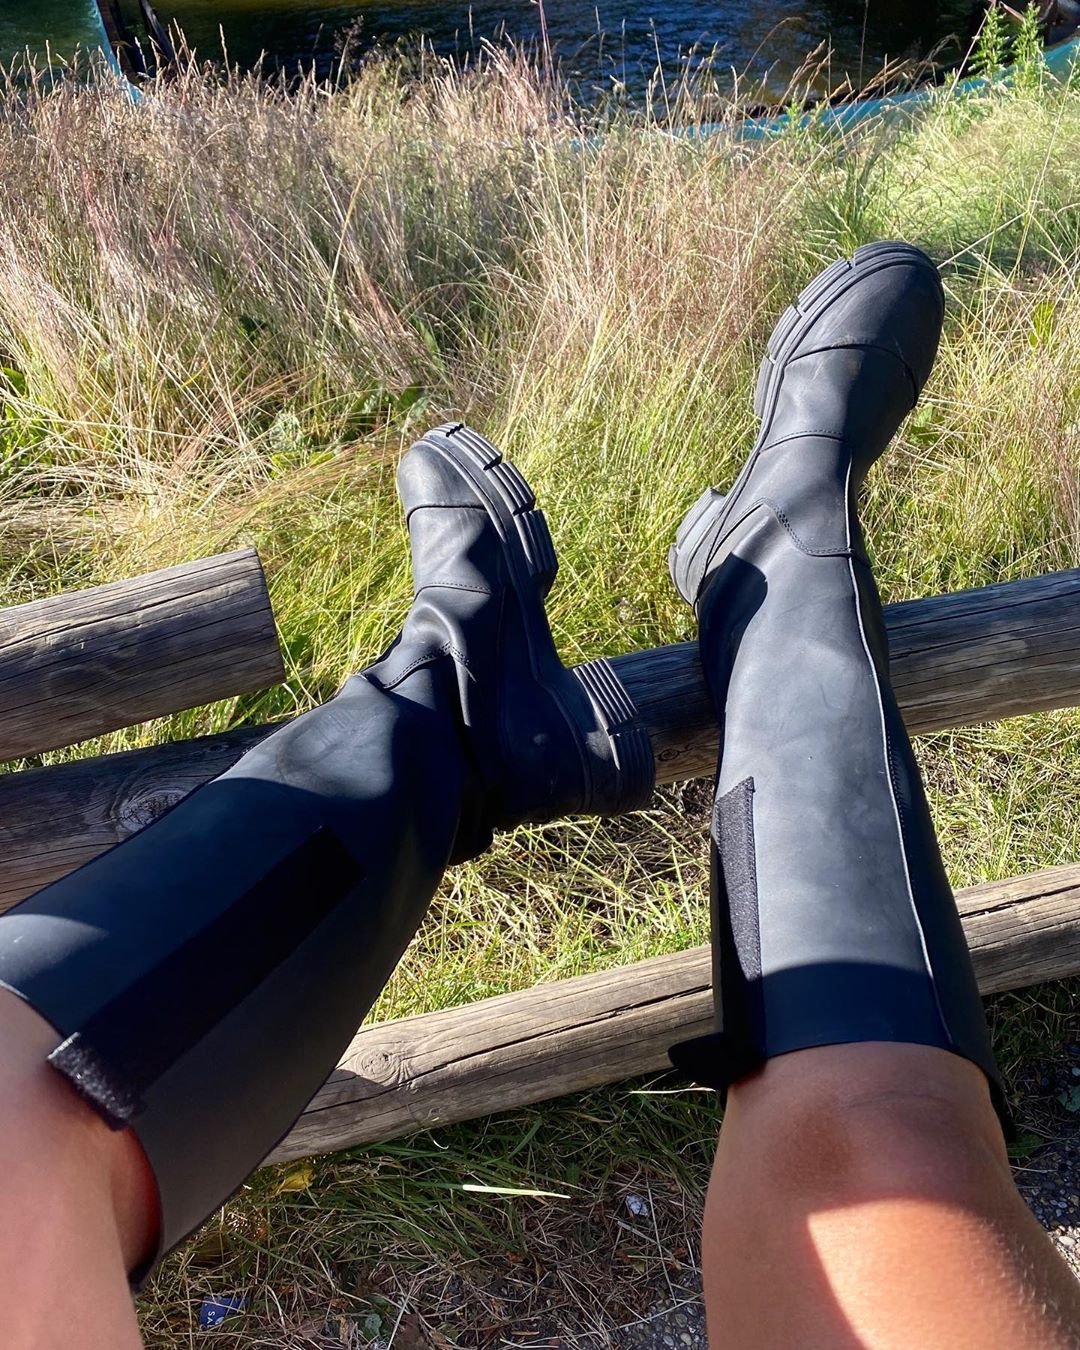 janka-polliani-ganni-rubber-knee-high-boots-instagram